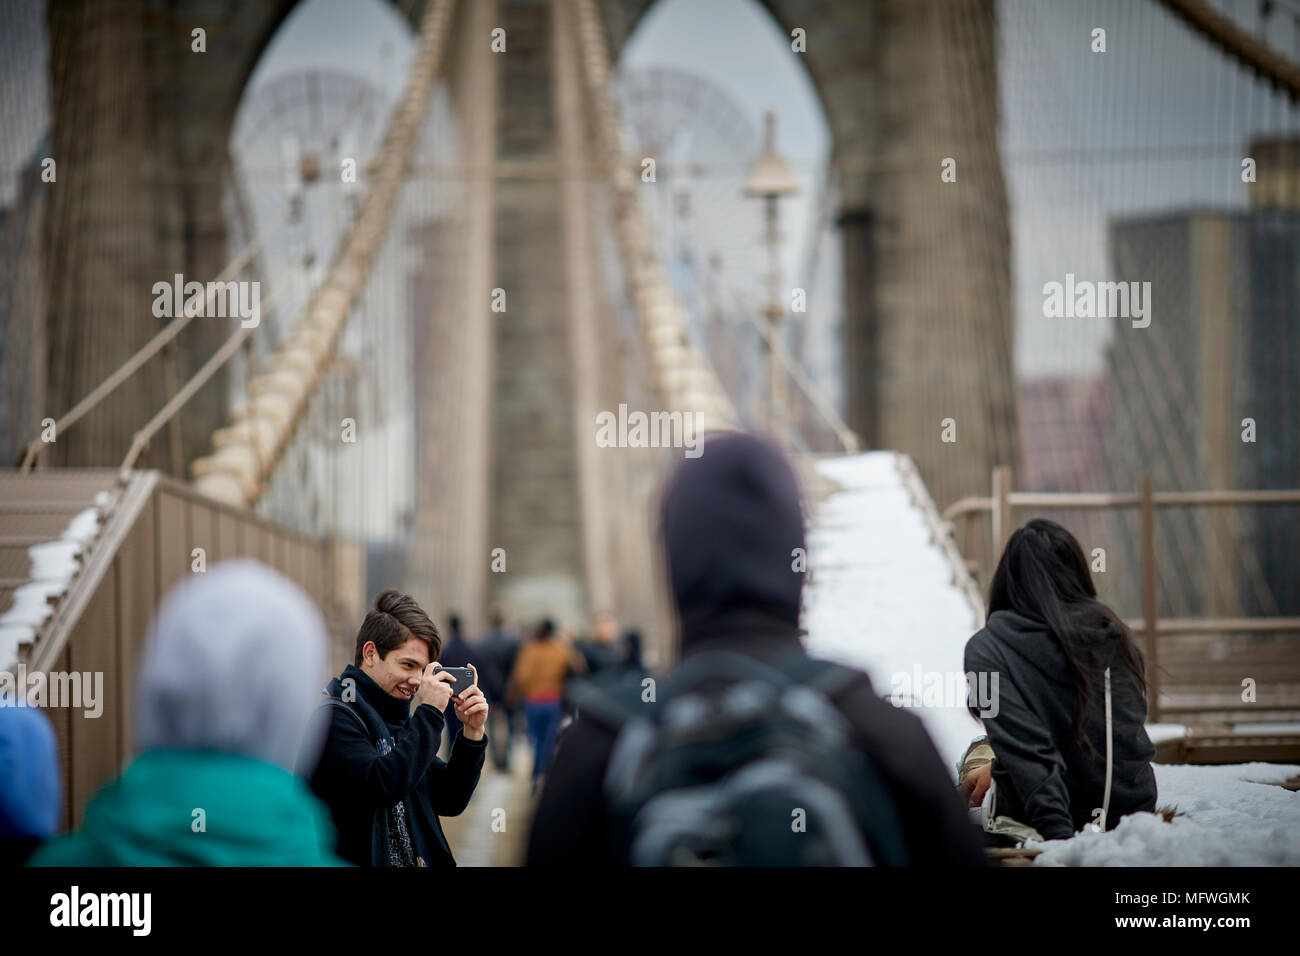 Brooklyn in New York City, No Locks fine notice on Brooklyn Bridge tourist stop to take pictures on the landmark structure - Stock Image